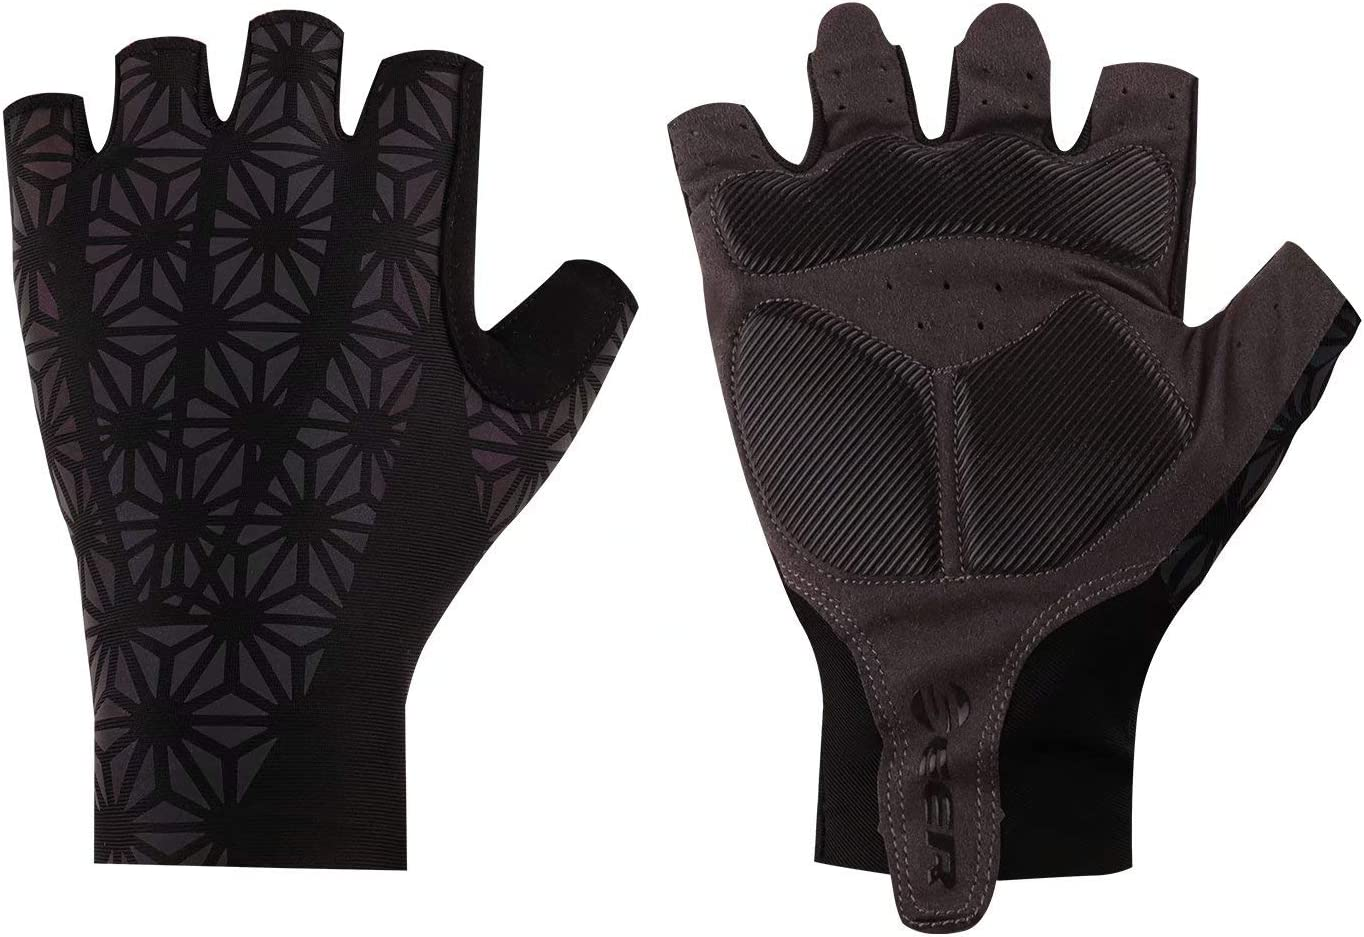 BOLANY Cycling Selling and selling Gloves Half Silicone Antiski Riding Finger 1 year warranty